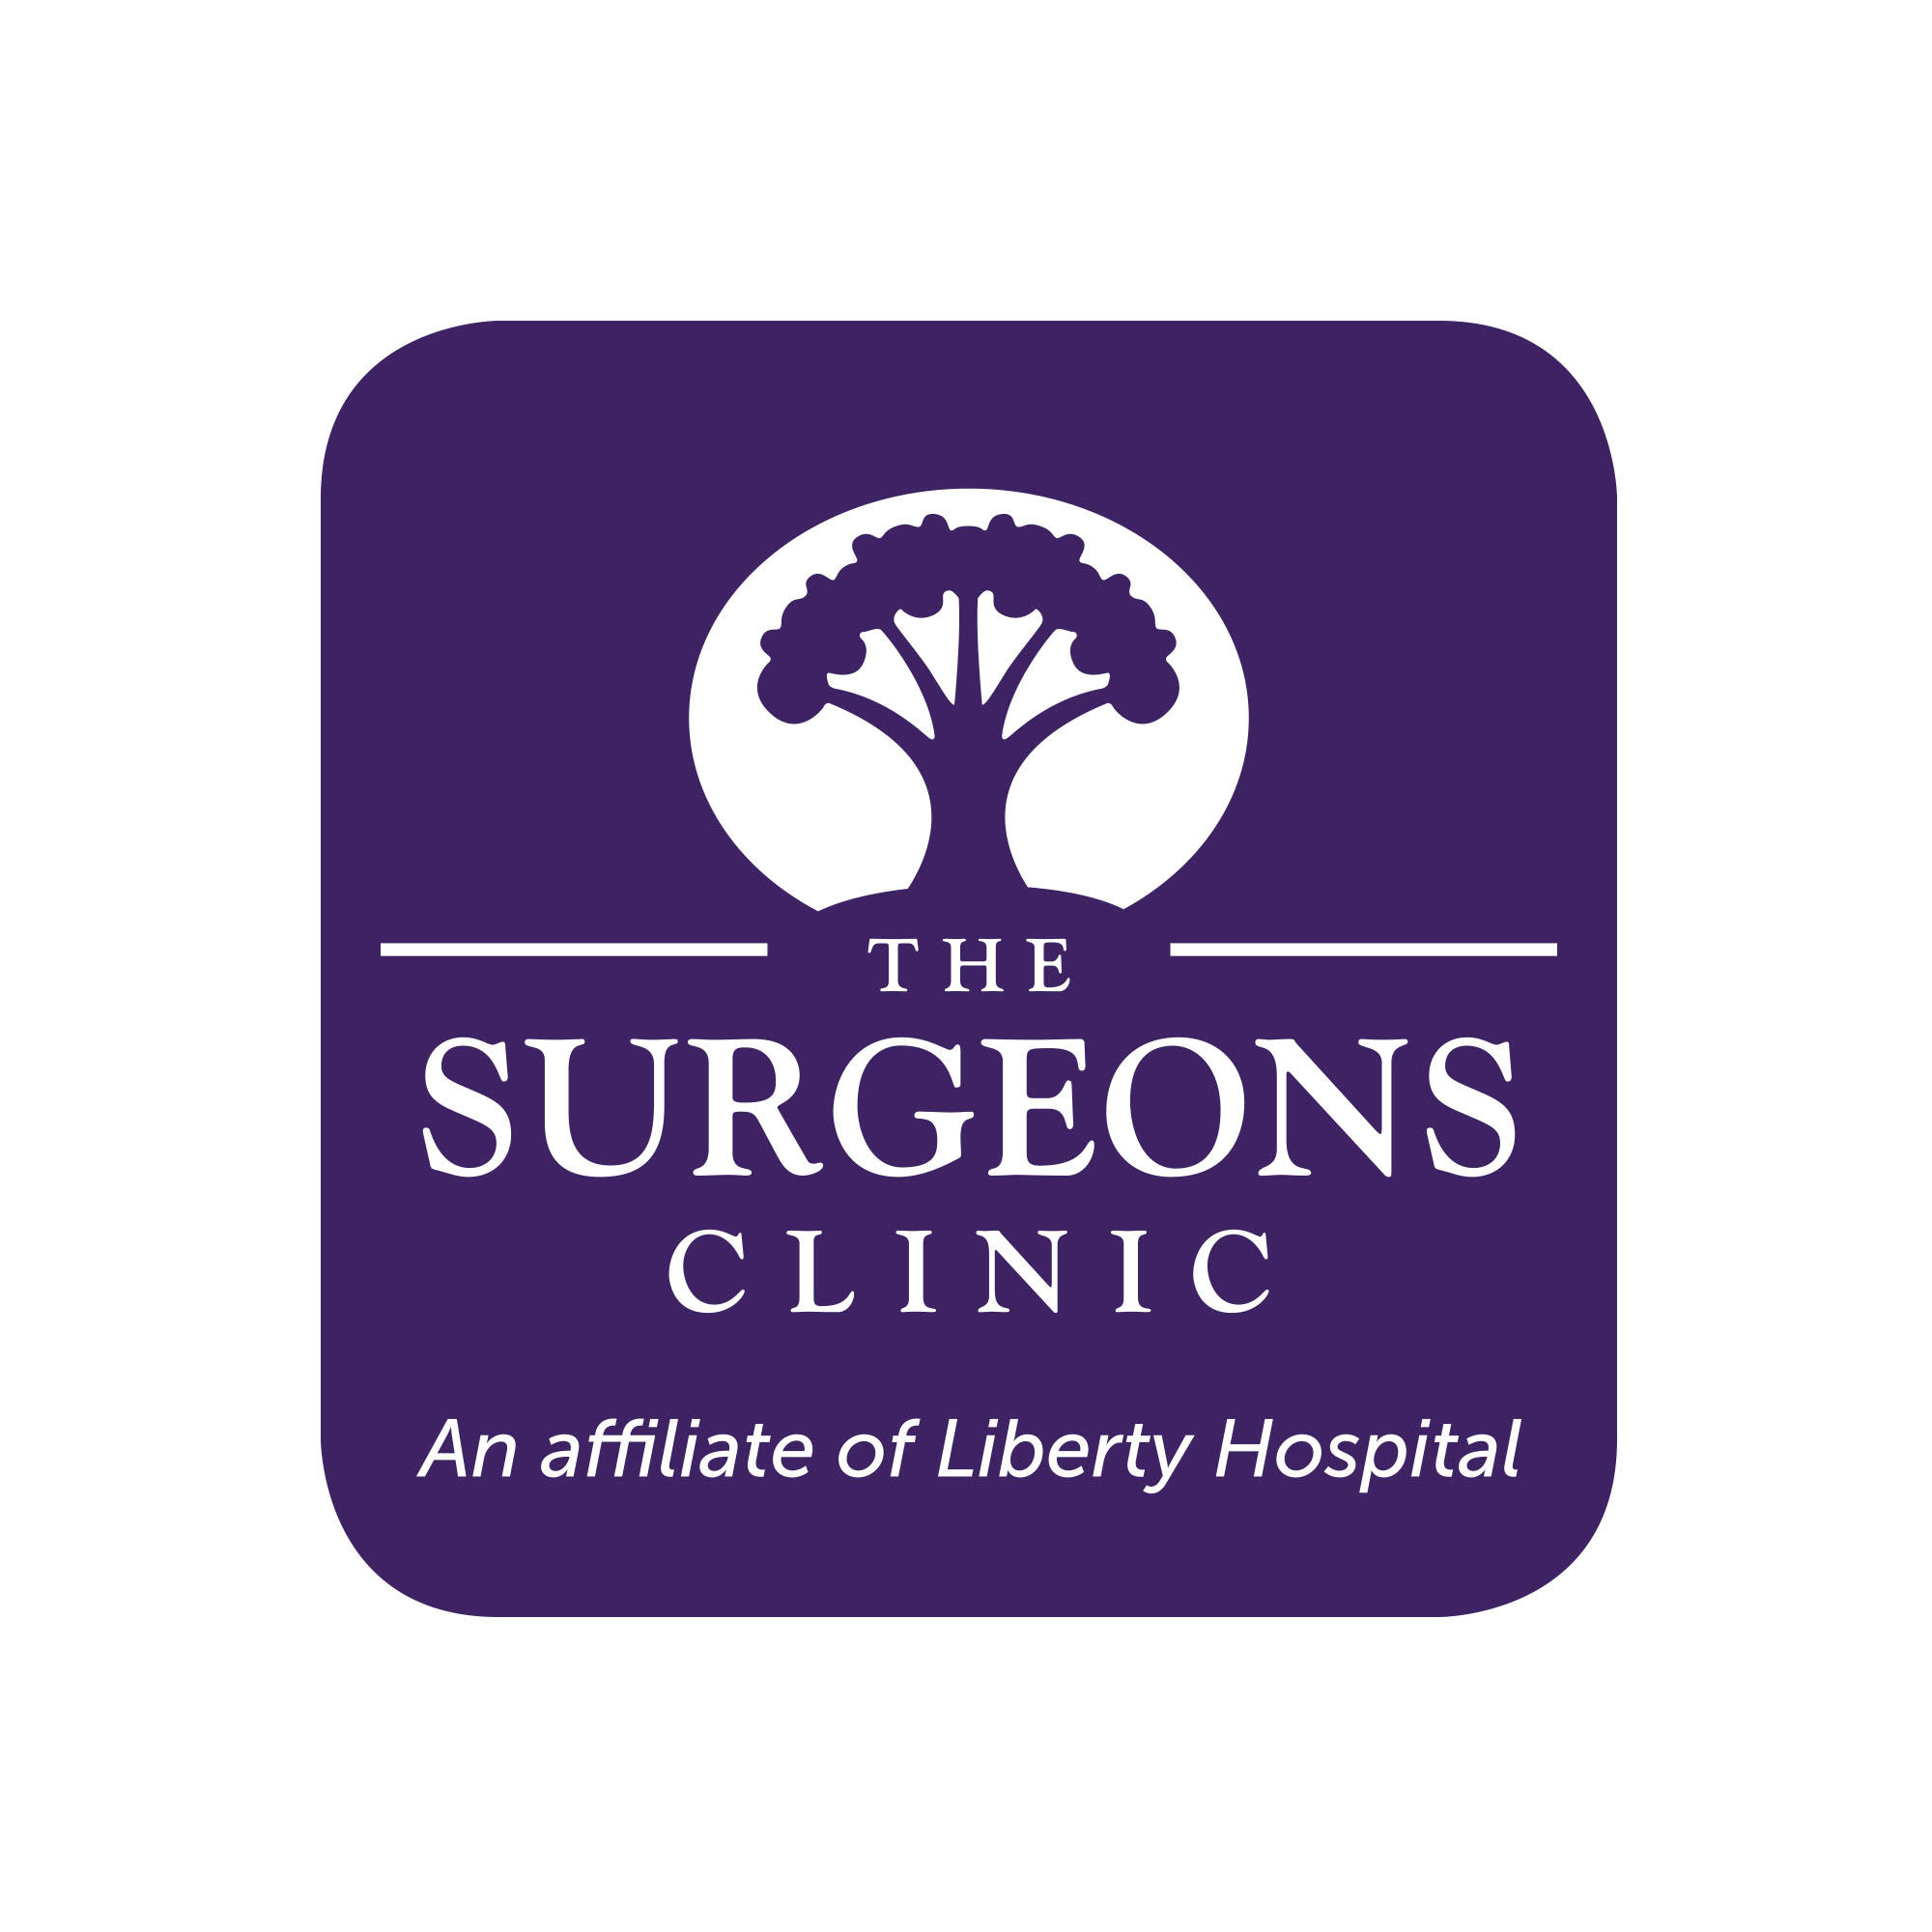 The Surgeons Clinic